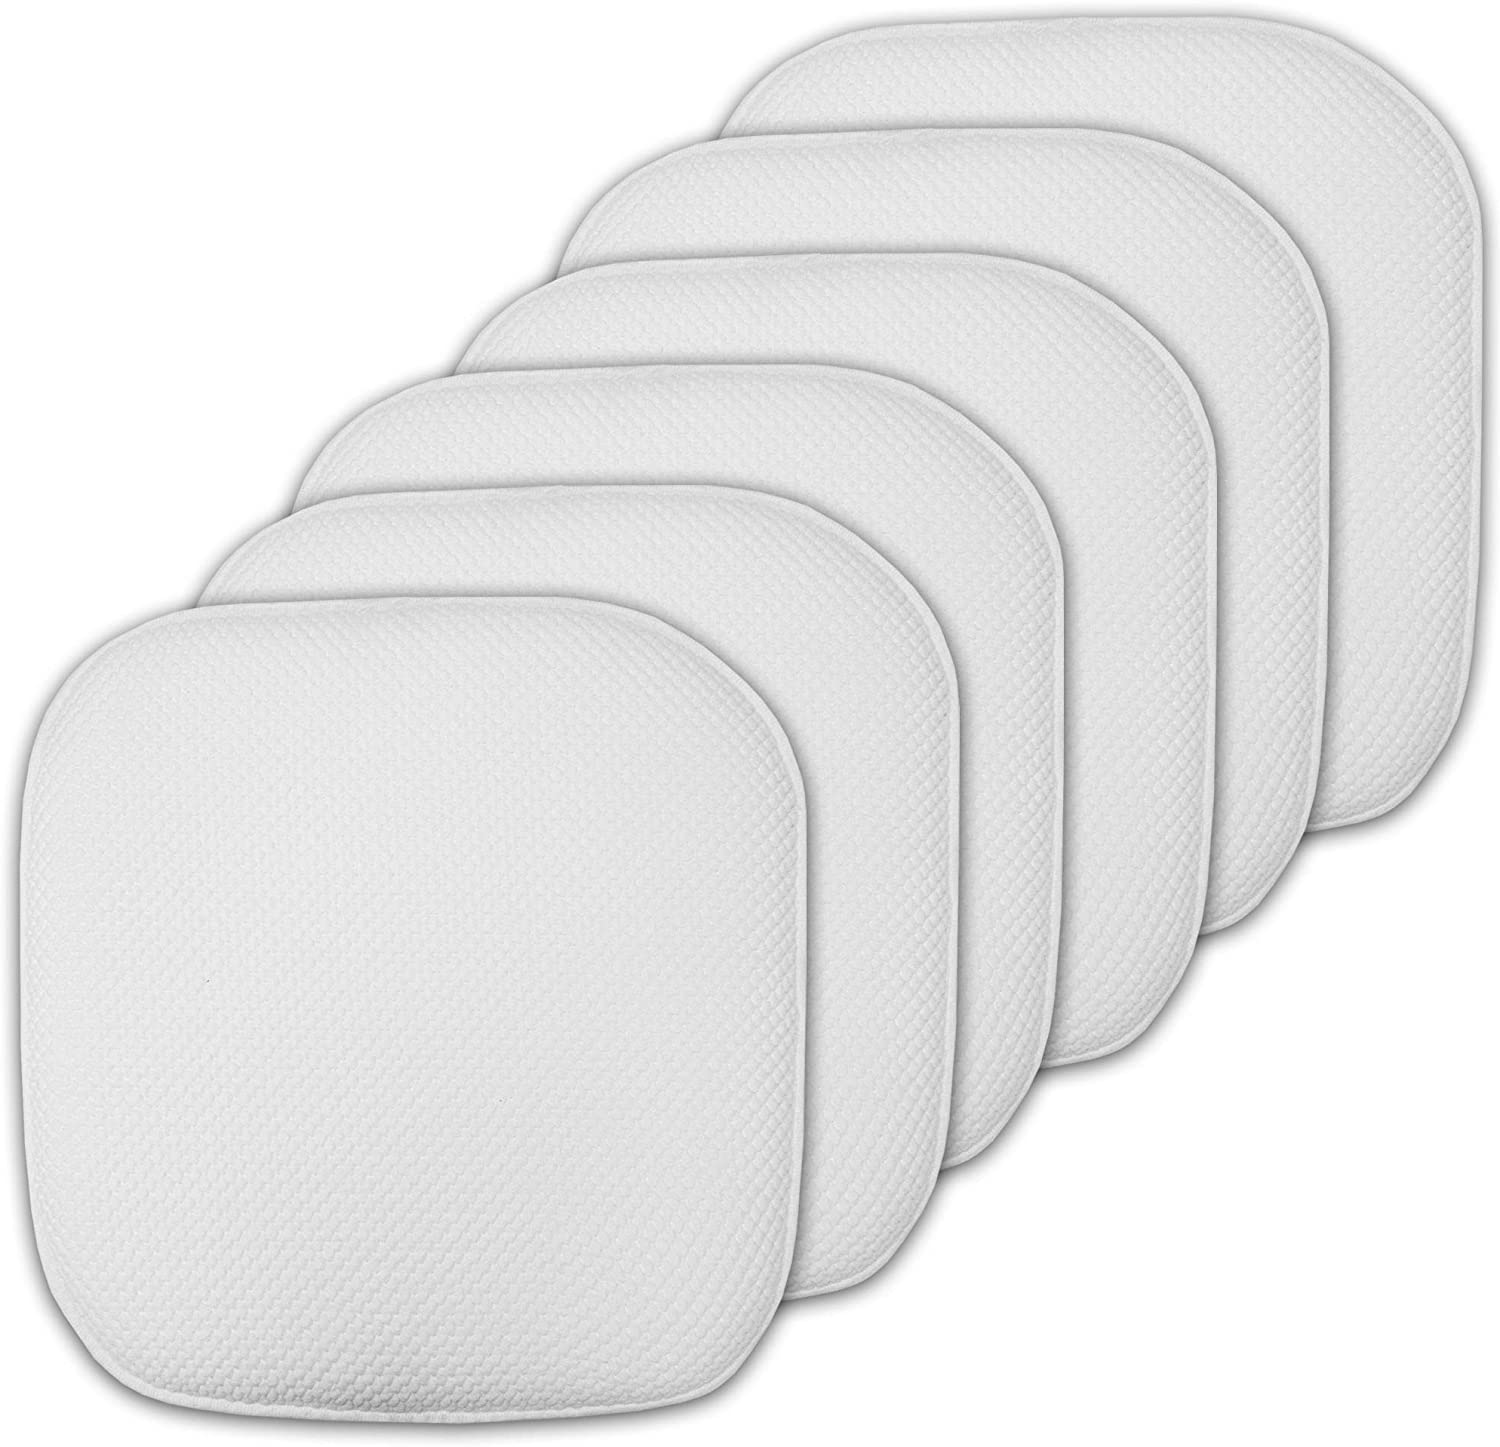 """Sweet Home Collection Cushion Memory Foam Chair Pads Honeycomb Nonslip Back Seat Cover 16"""" x 16"""" 6 Pack White"""